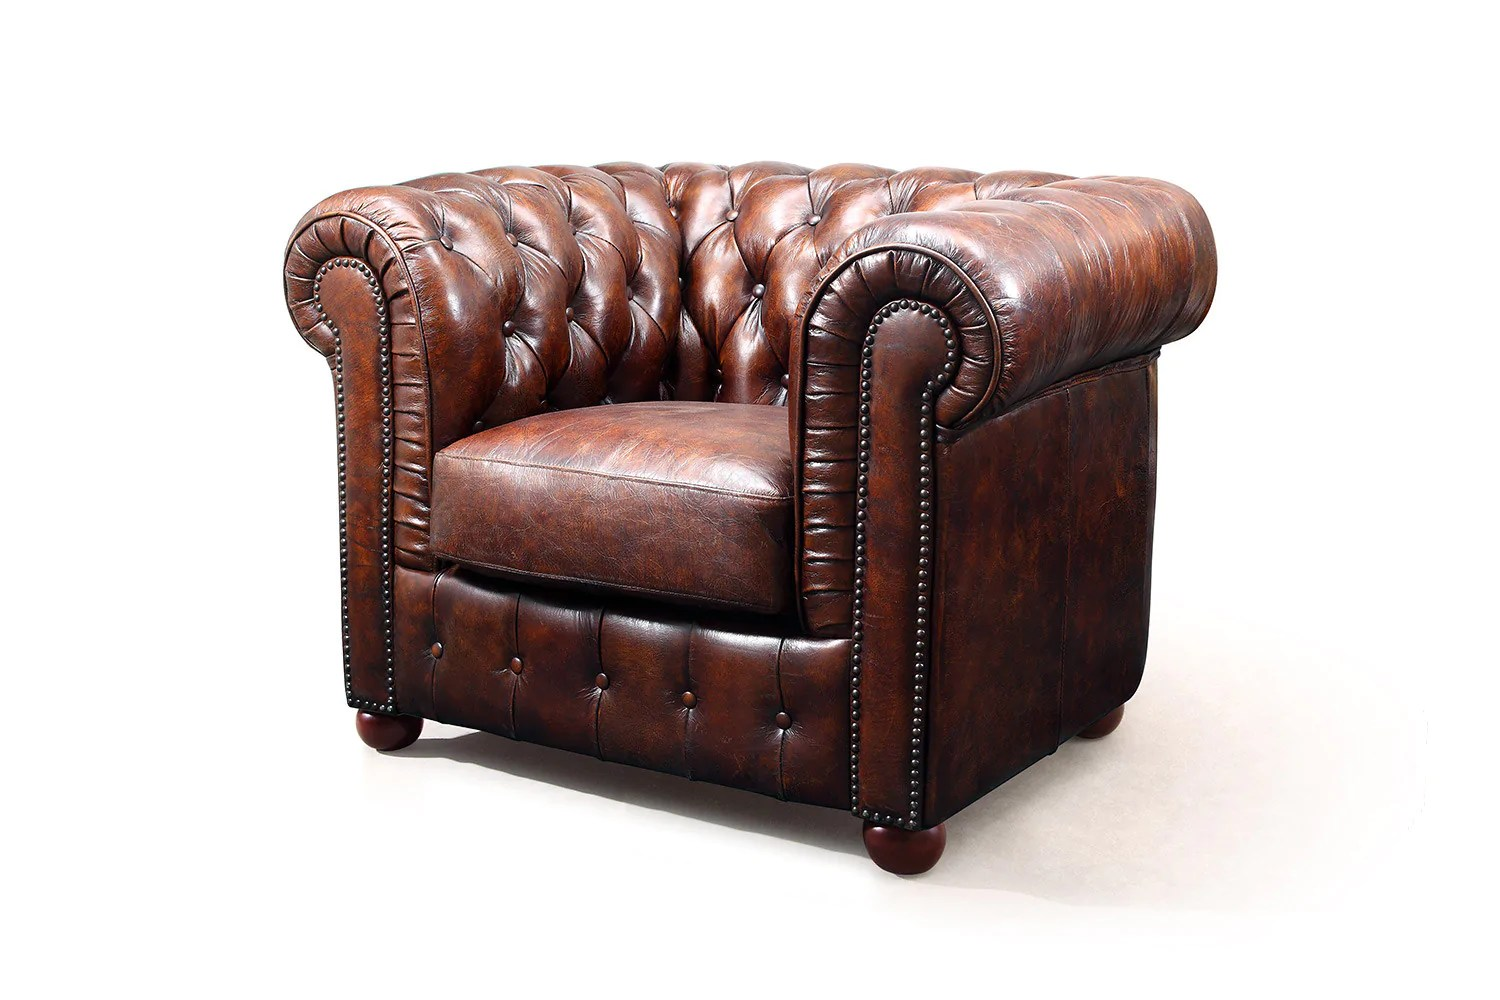 Chesterfieldsessel Fauteuil Chesterfield Original Rose And Moore